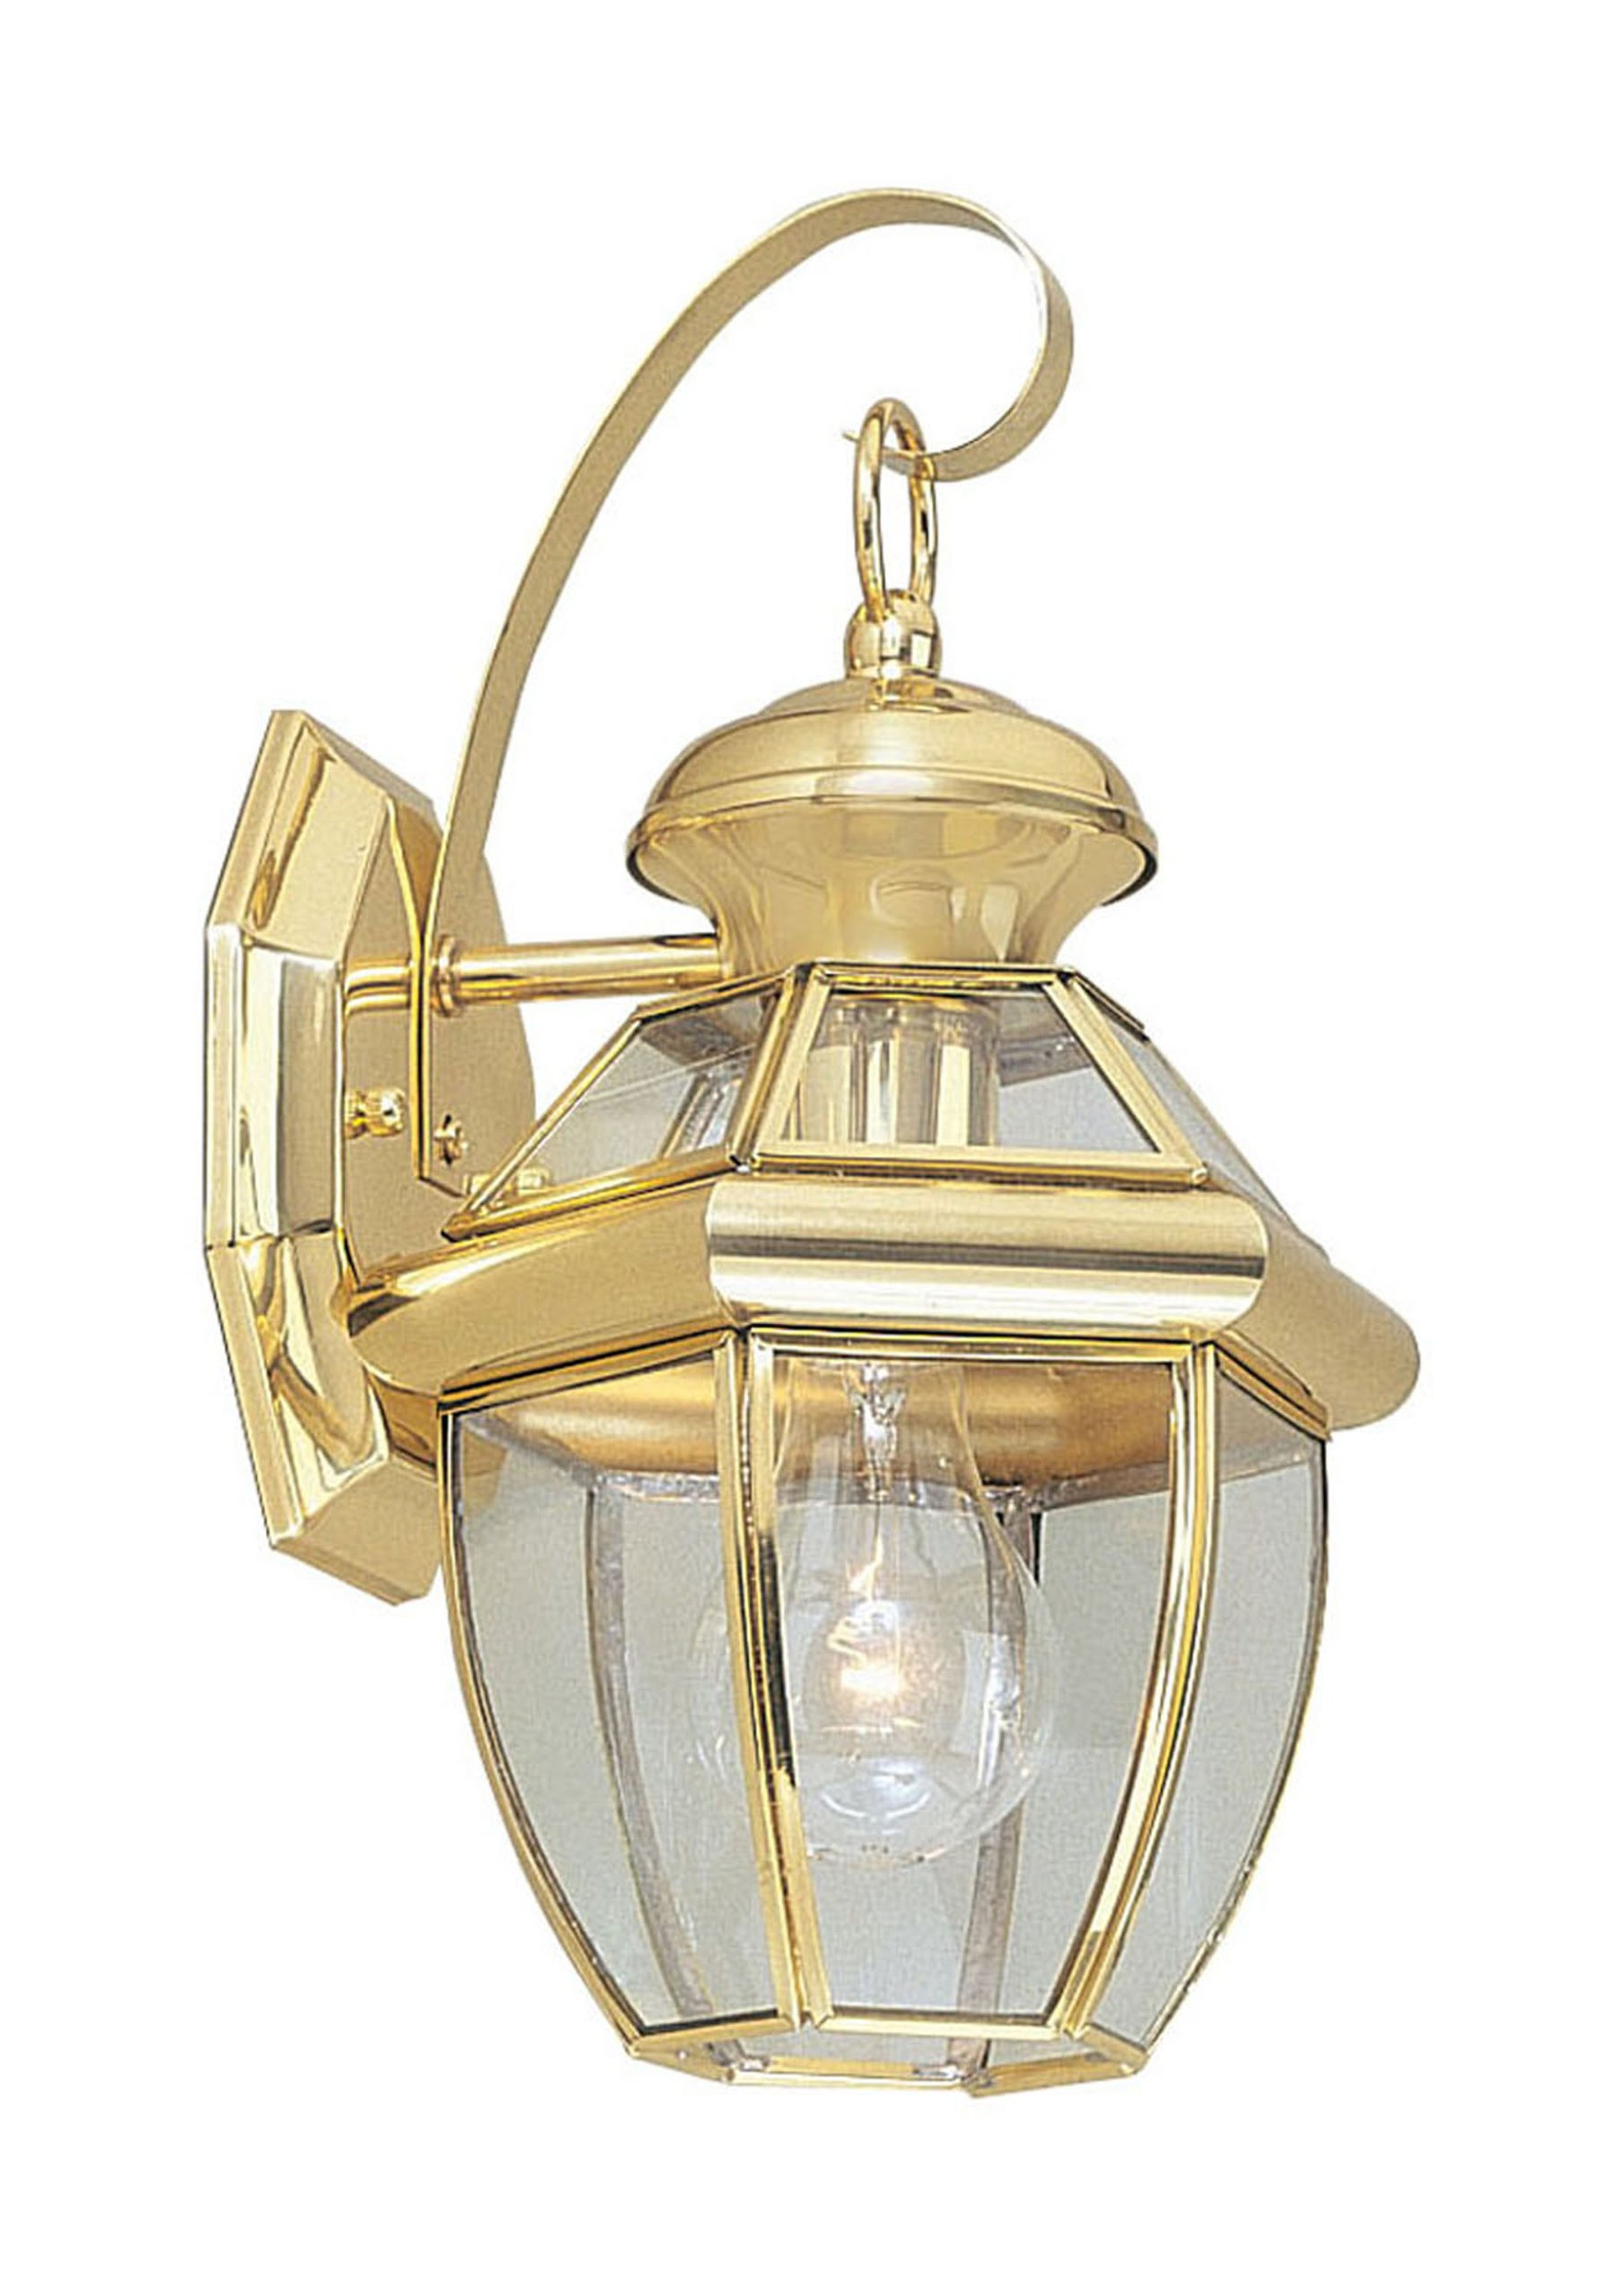 Livex Lighting 2051-02 Monterey 1 Light Outdoor Polished Brass Finish Solid Brass Wall Lantern with Clear Beveled Glass by Livex Lighting